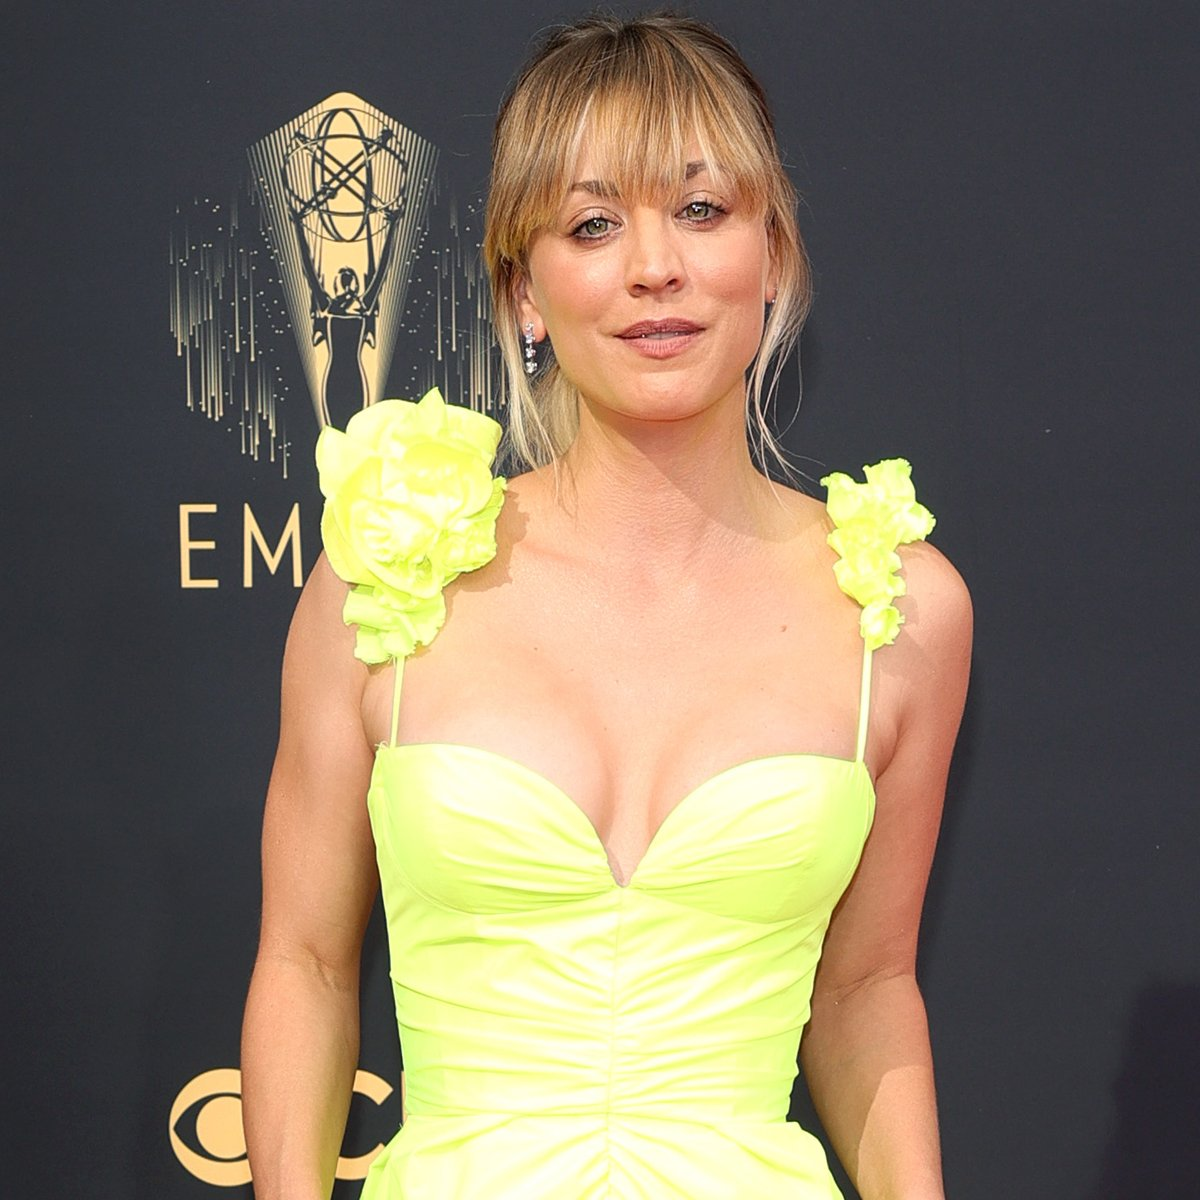 You'll Be Flying High After Seeing Kaley Cuoco's Neon Emmys Look